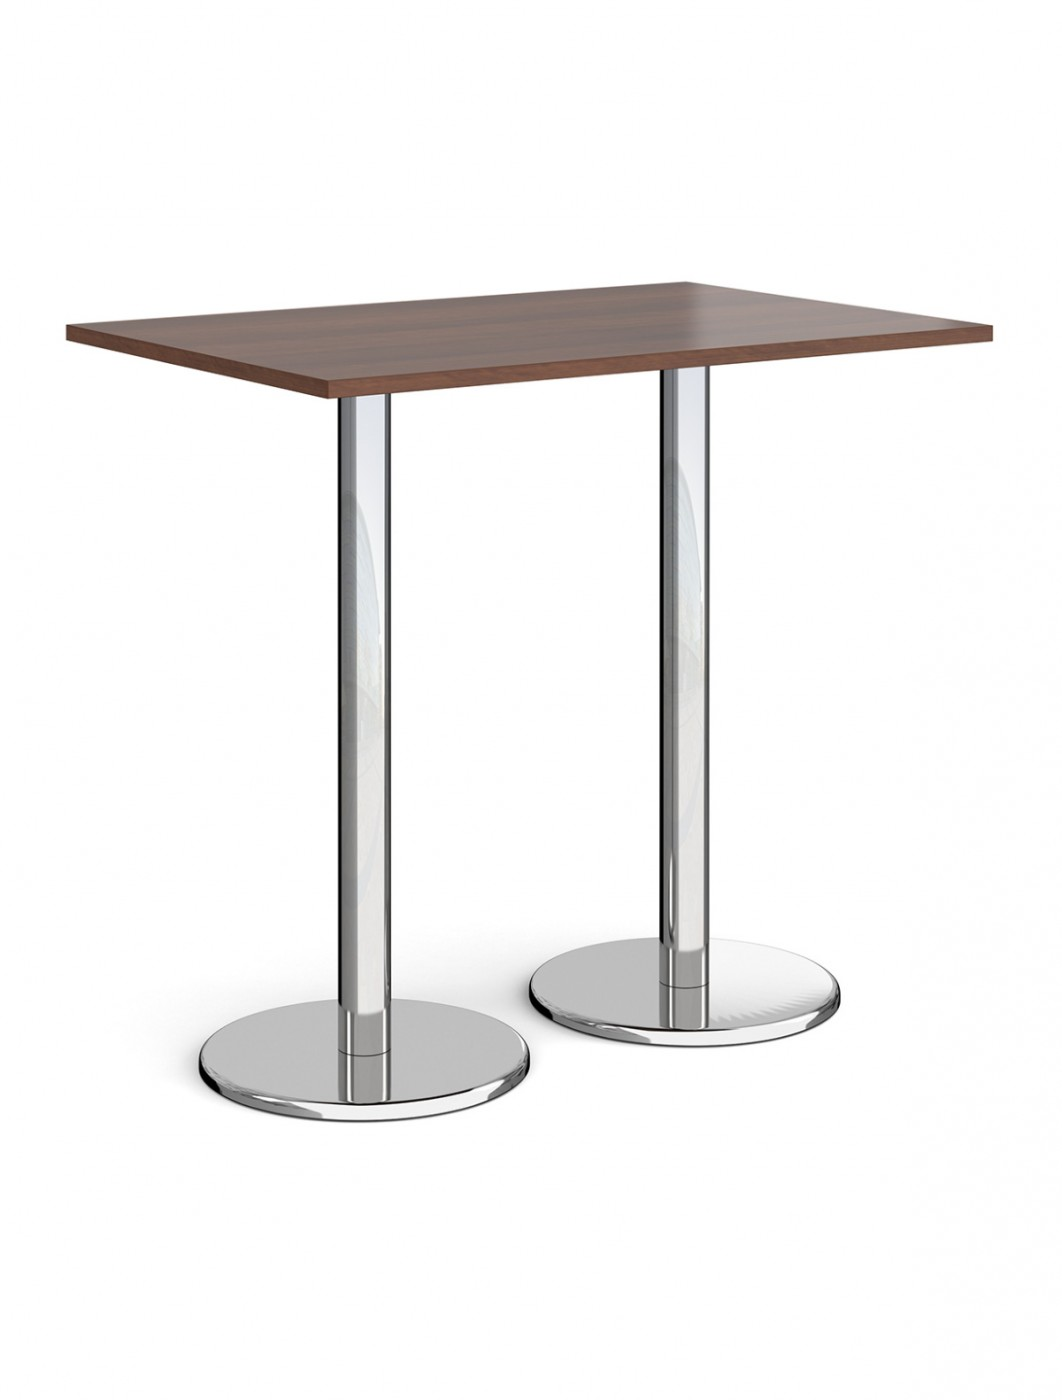 Rectangular Poseur Table Pisa 1200mm PPR1200 by Dams